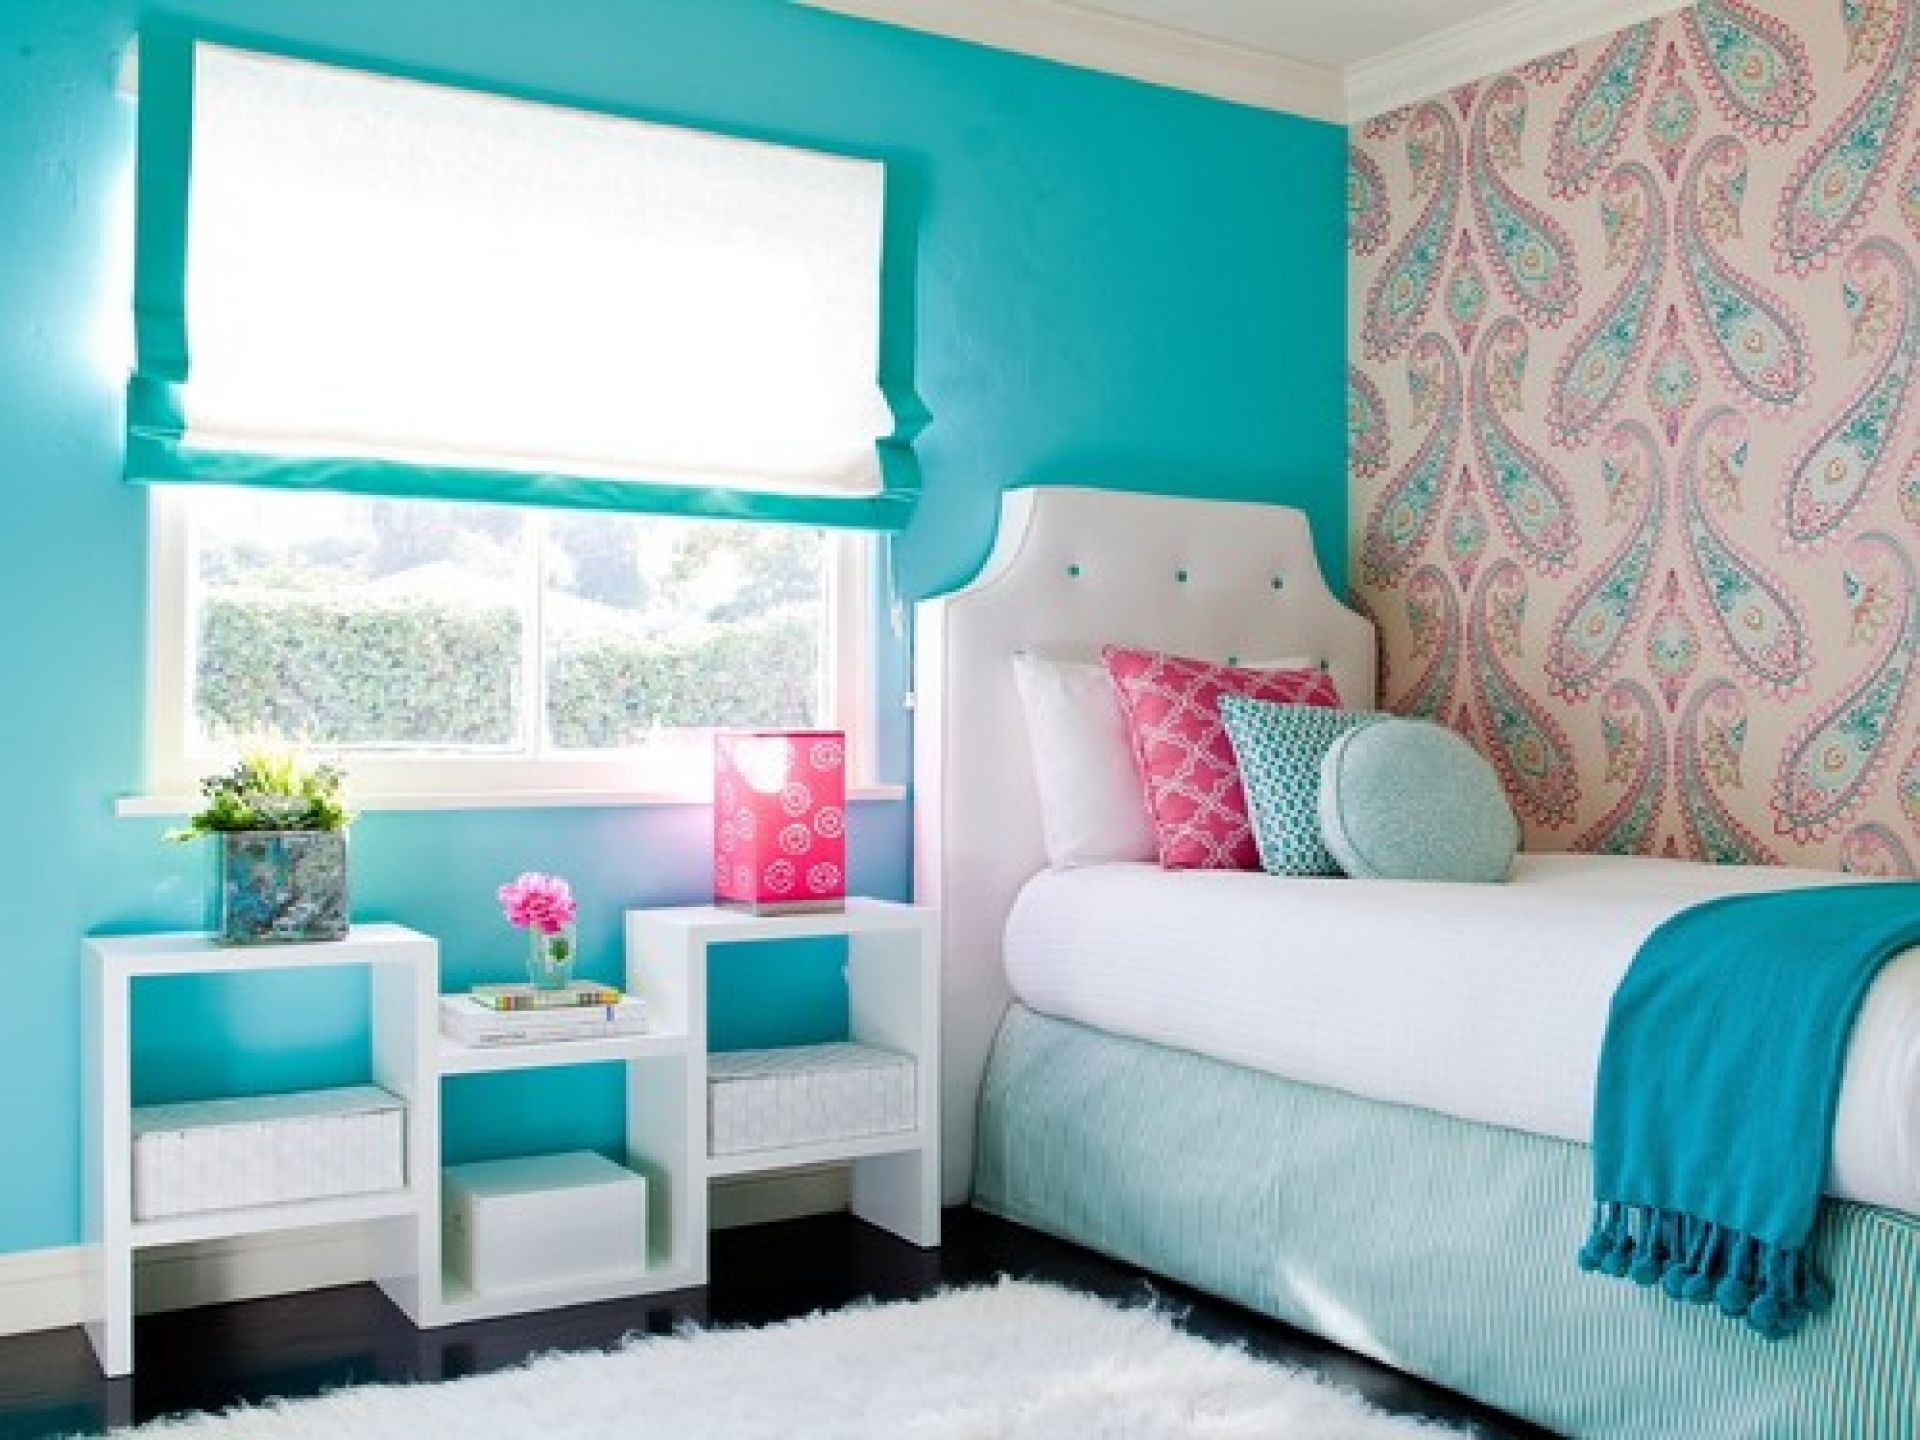 Simple bedroom design ideas for teenage girls - Simple Design Comfy Room Colors Teenage Girl Bedroom Wall Paint Ideas Colors For Bedrooms For Teenage